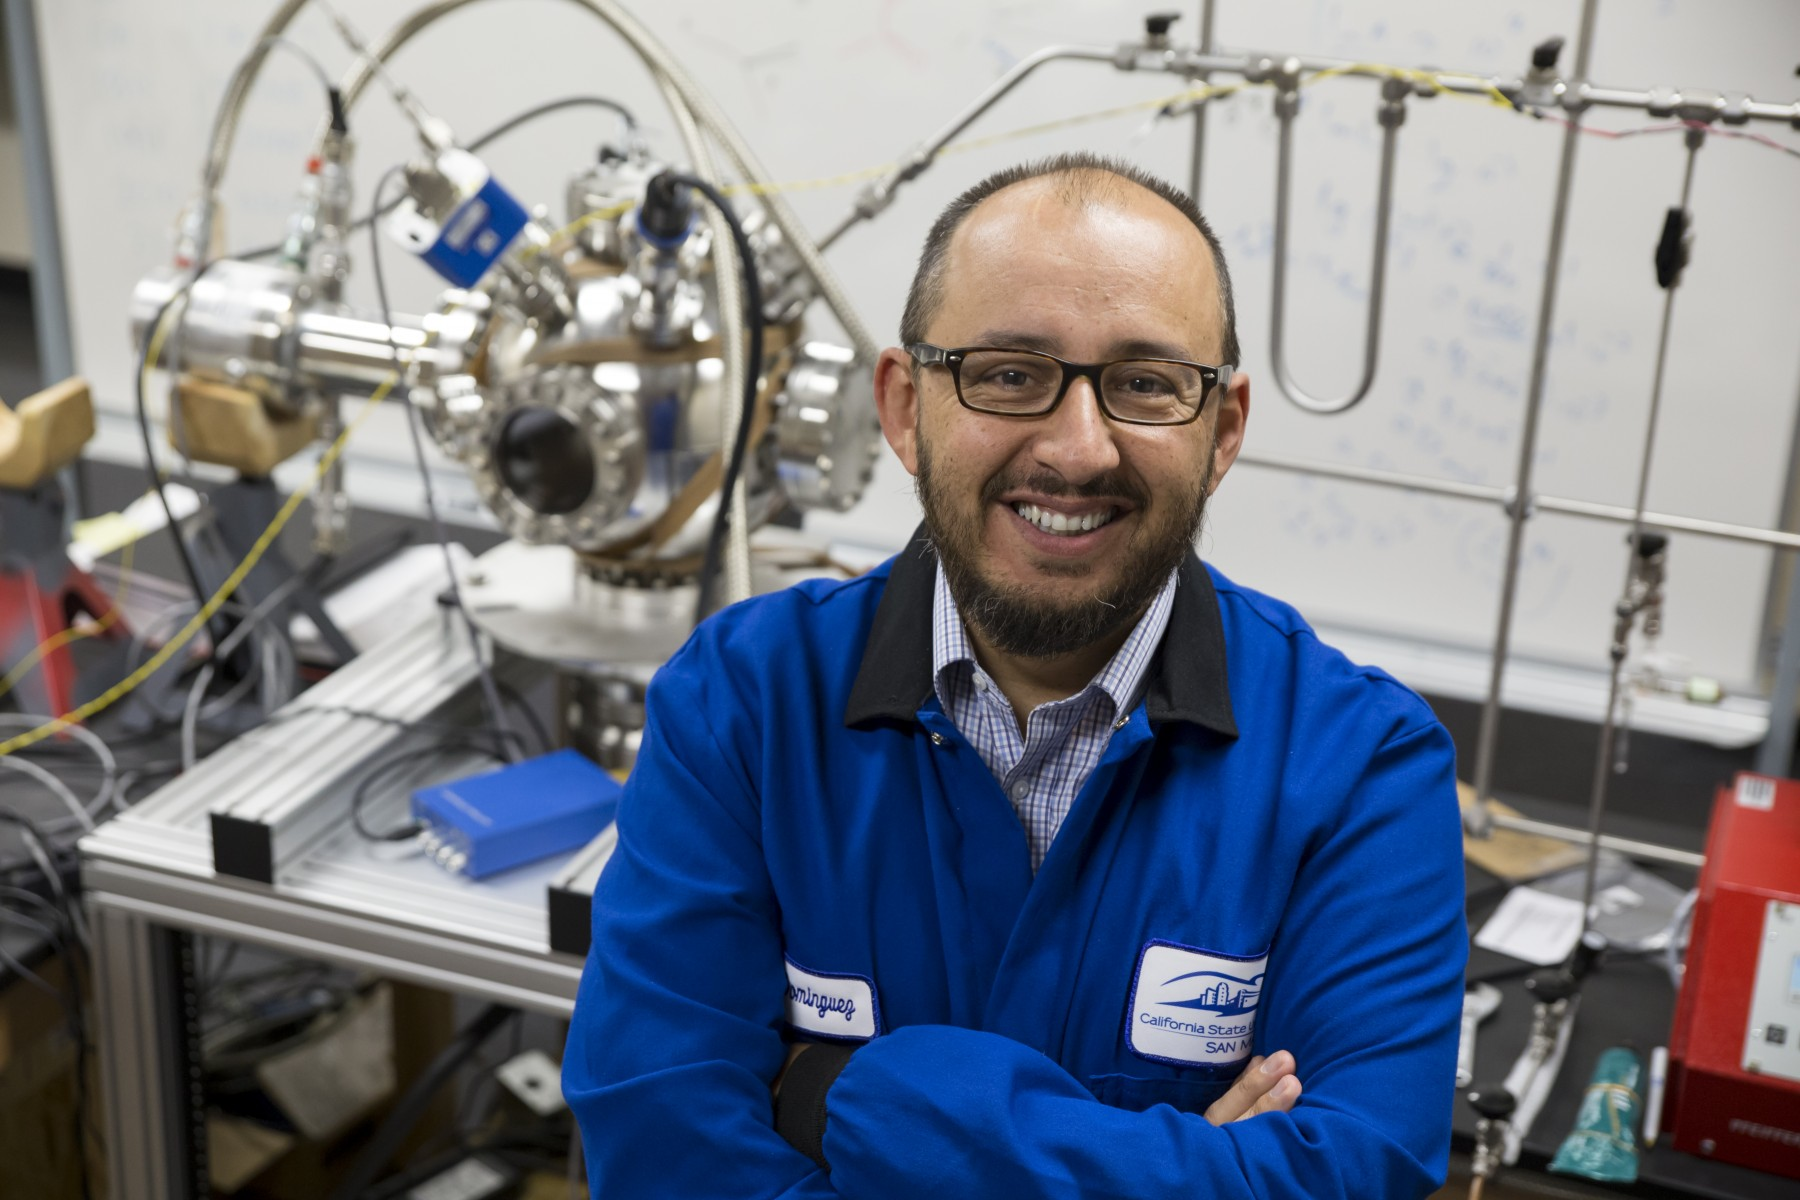 CSUSM physics professor Gerardo Dominguez will receive an $837,000 grant from NASA to conduct research that will contribute to understanding several important questions about ice on the moon, including its origin.